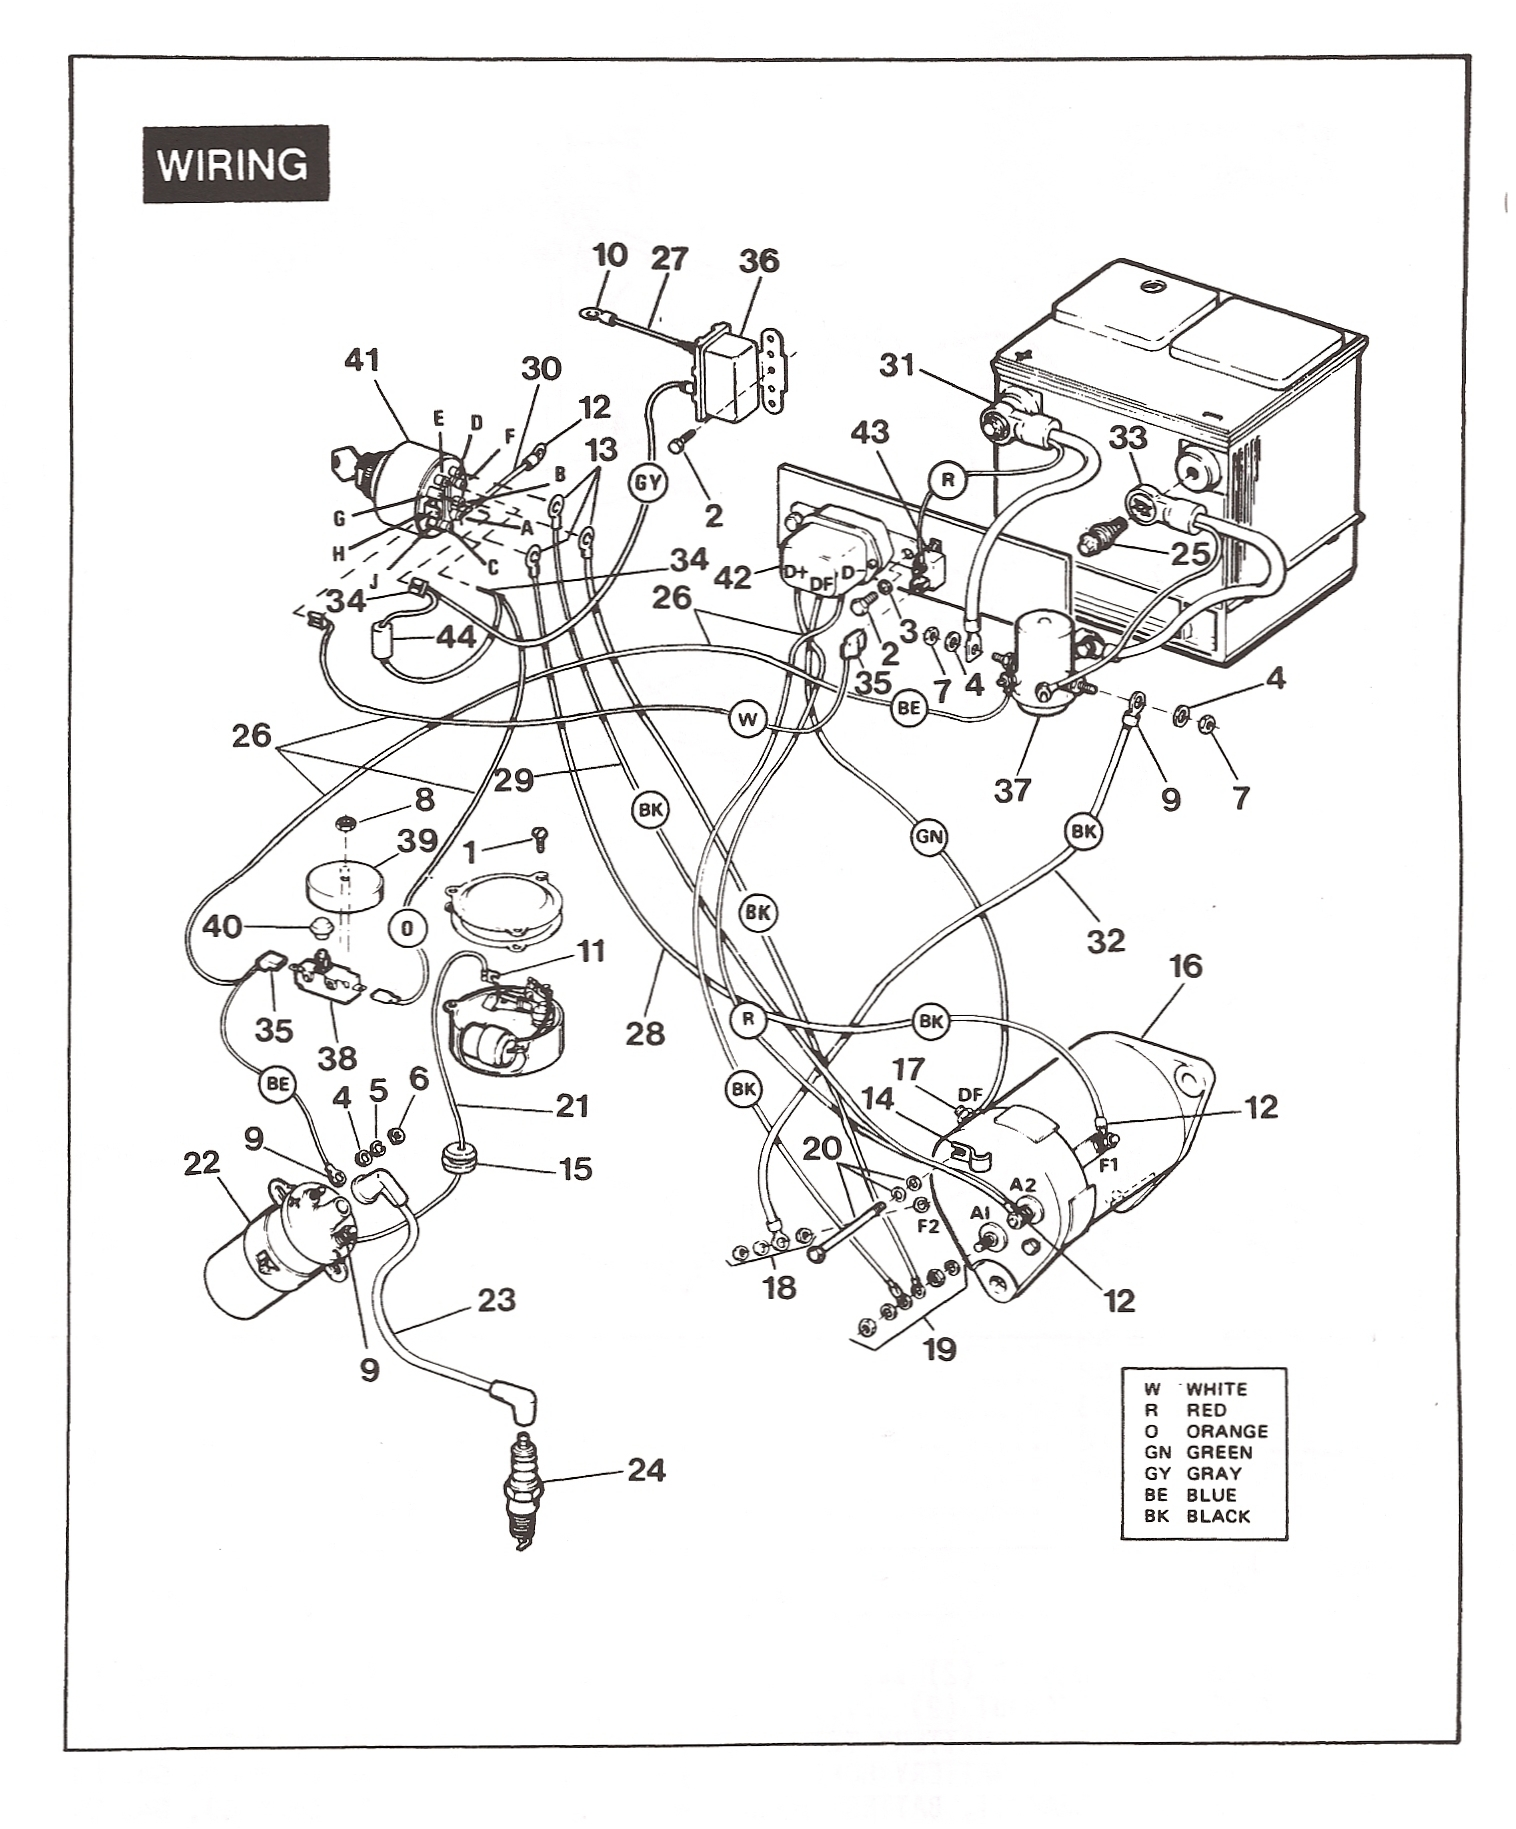 hight resolution of vintagegolfcartparts com 1985 ezgo wiring diagram 1989 ezgo wiring diagram